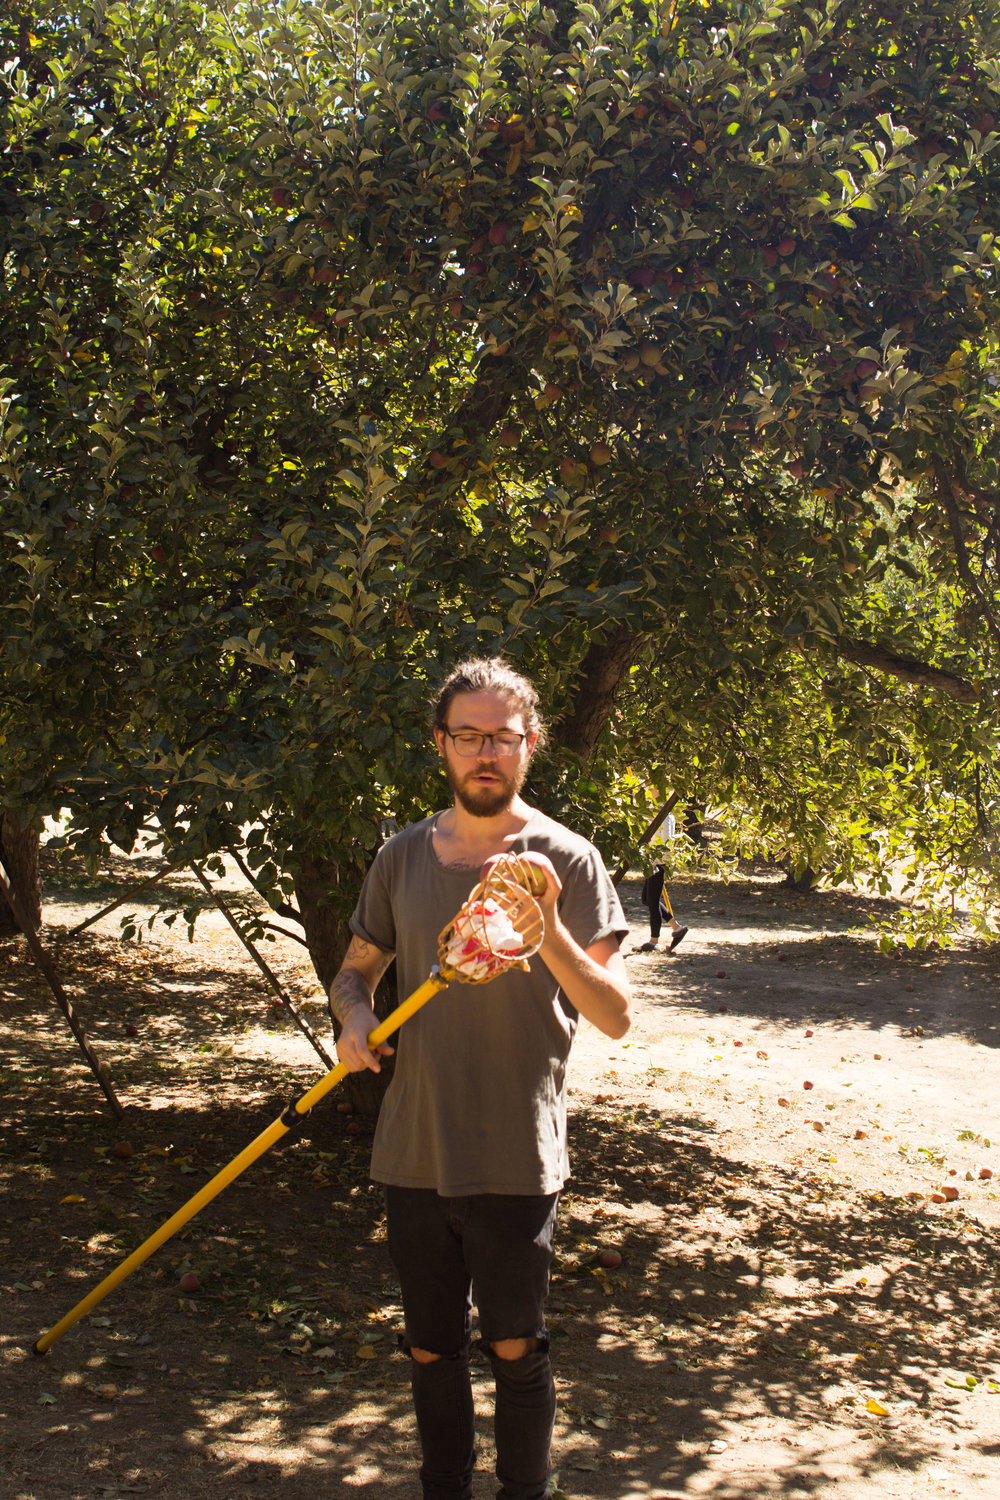 applepicking-11.jpg